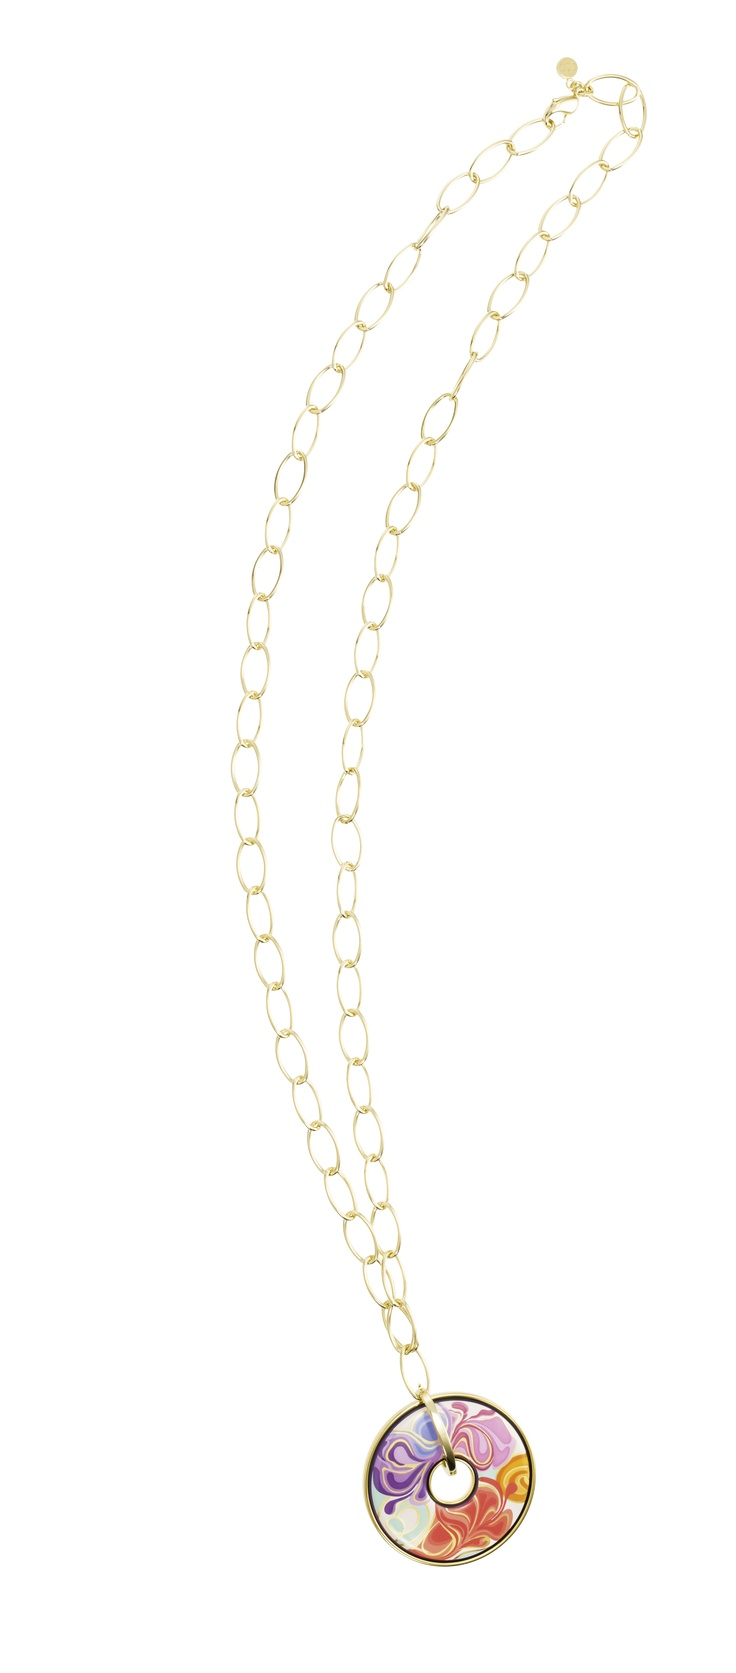 Elegance in a necklace!   Luna Pieana, Floral Symphony - Bouquet of Dreams collection, FREYWILLE, Baneasa Shopping City